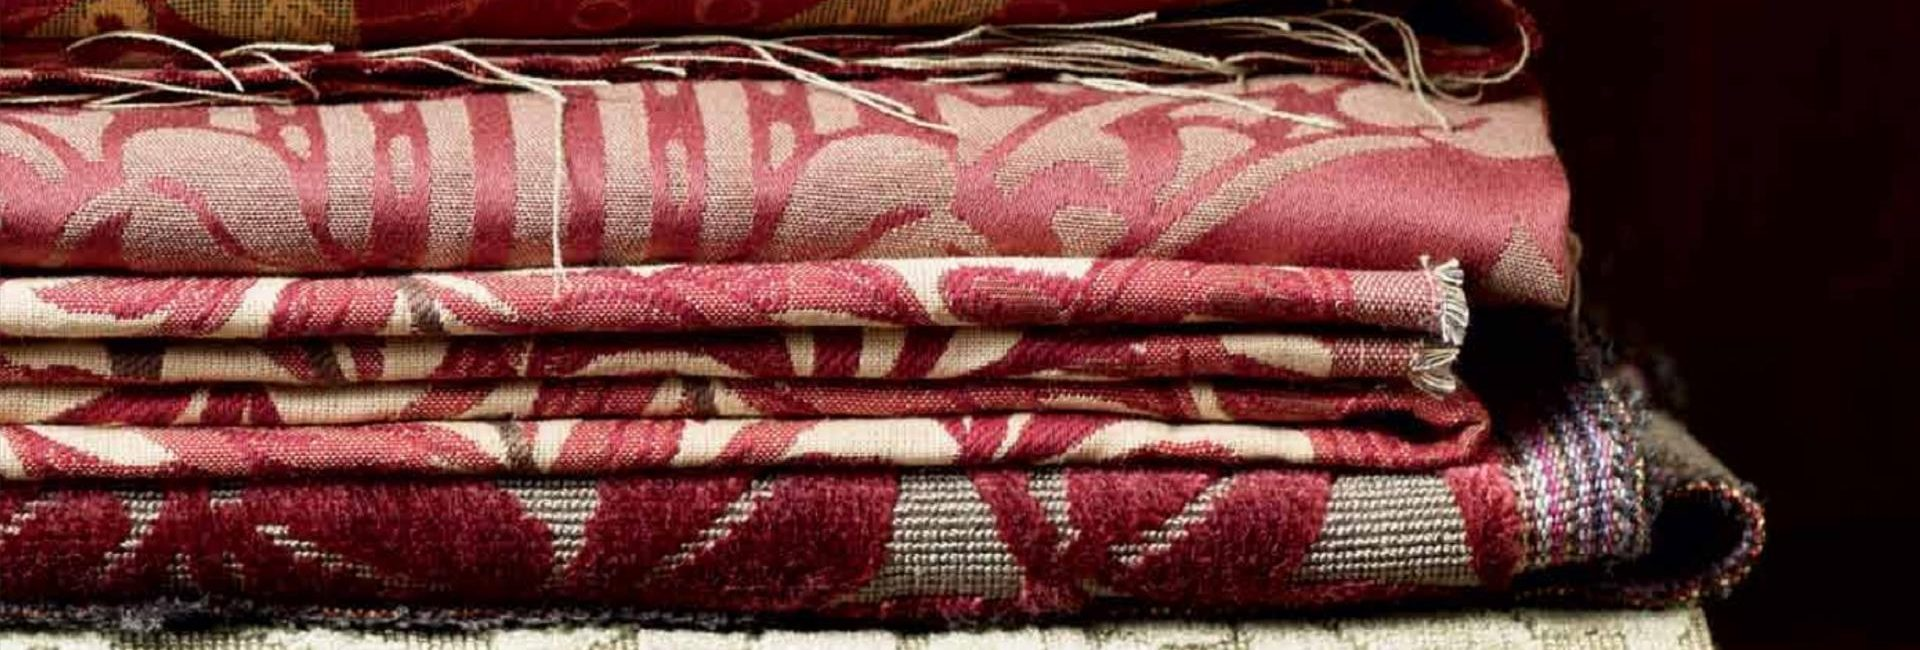 Sanderson Archive fabric collection available from Fabric Gallery and Interiors of York